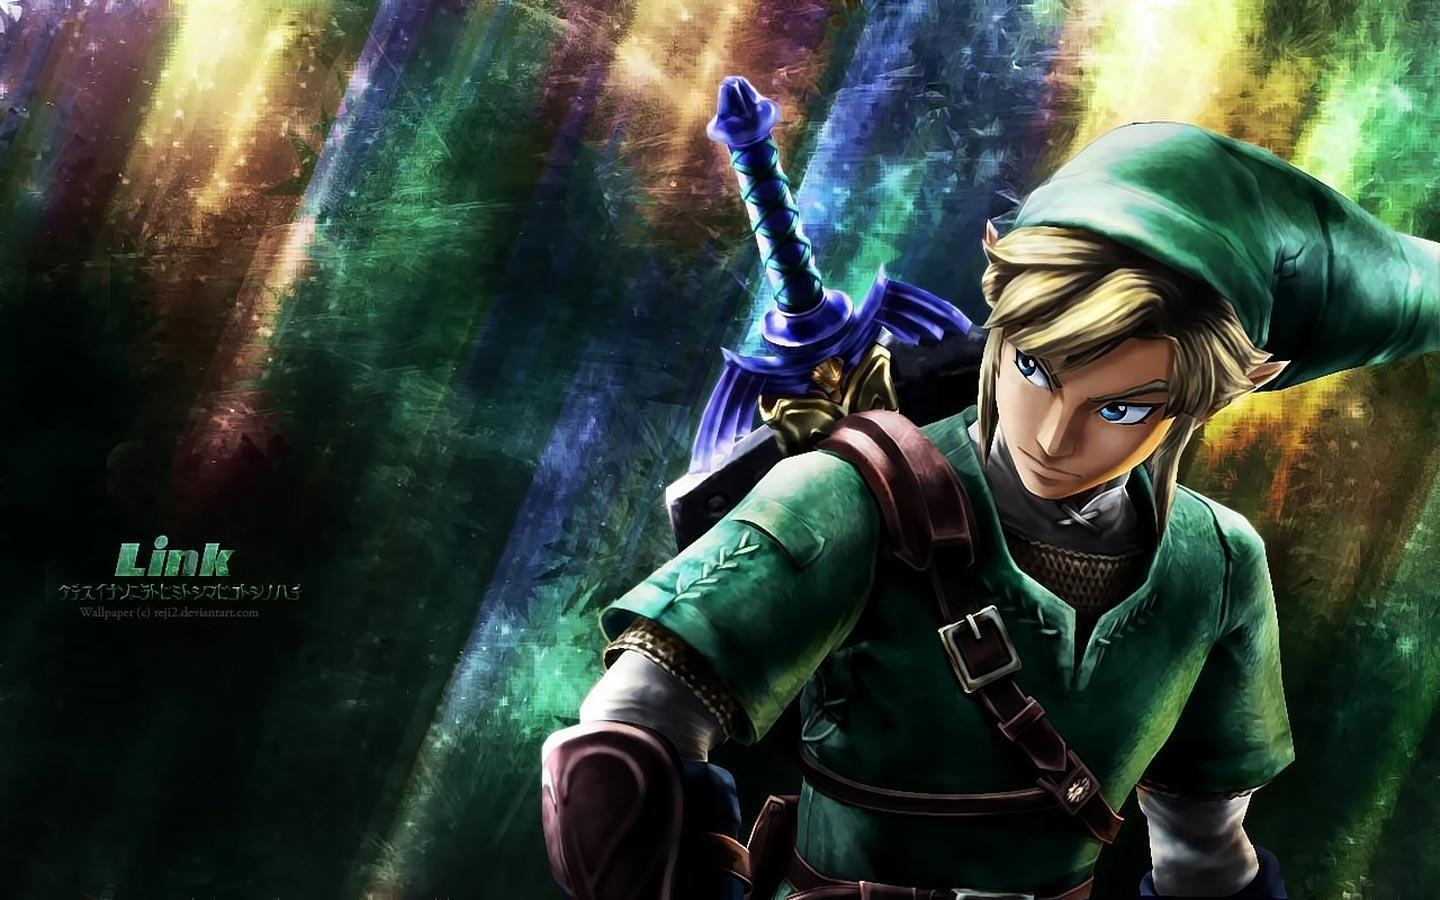 legend of zelda link wallpapers - wallpaper cave